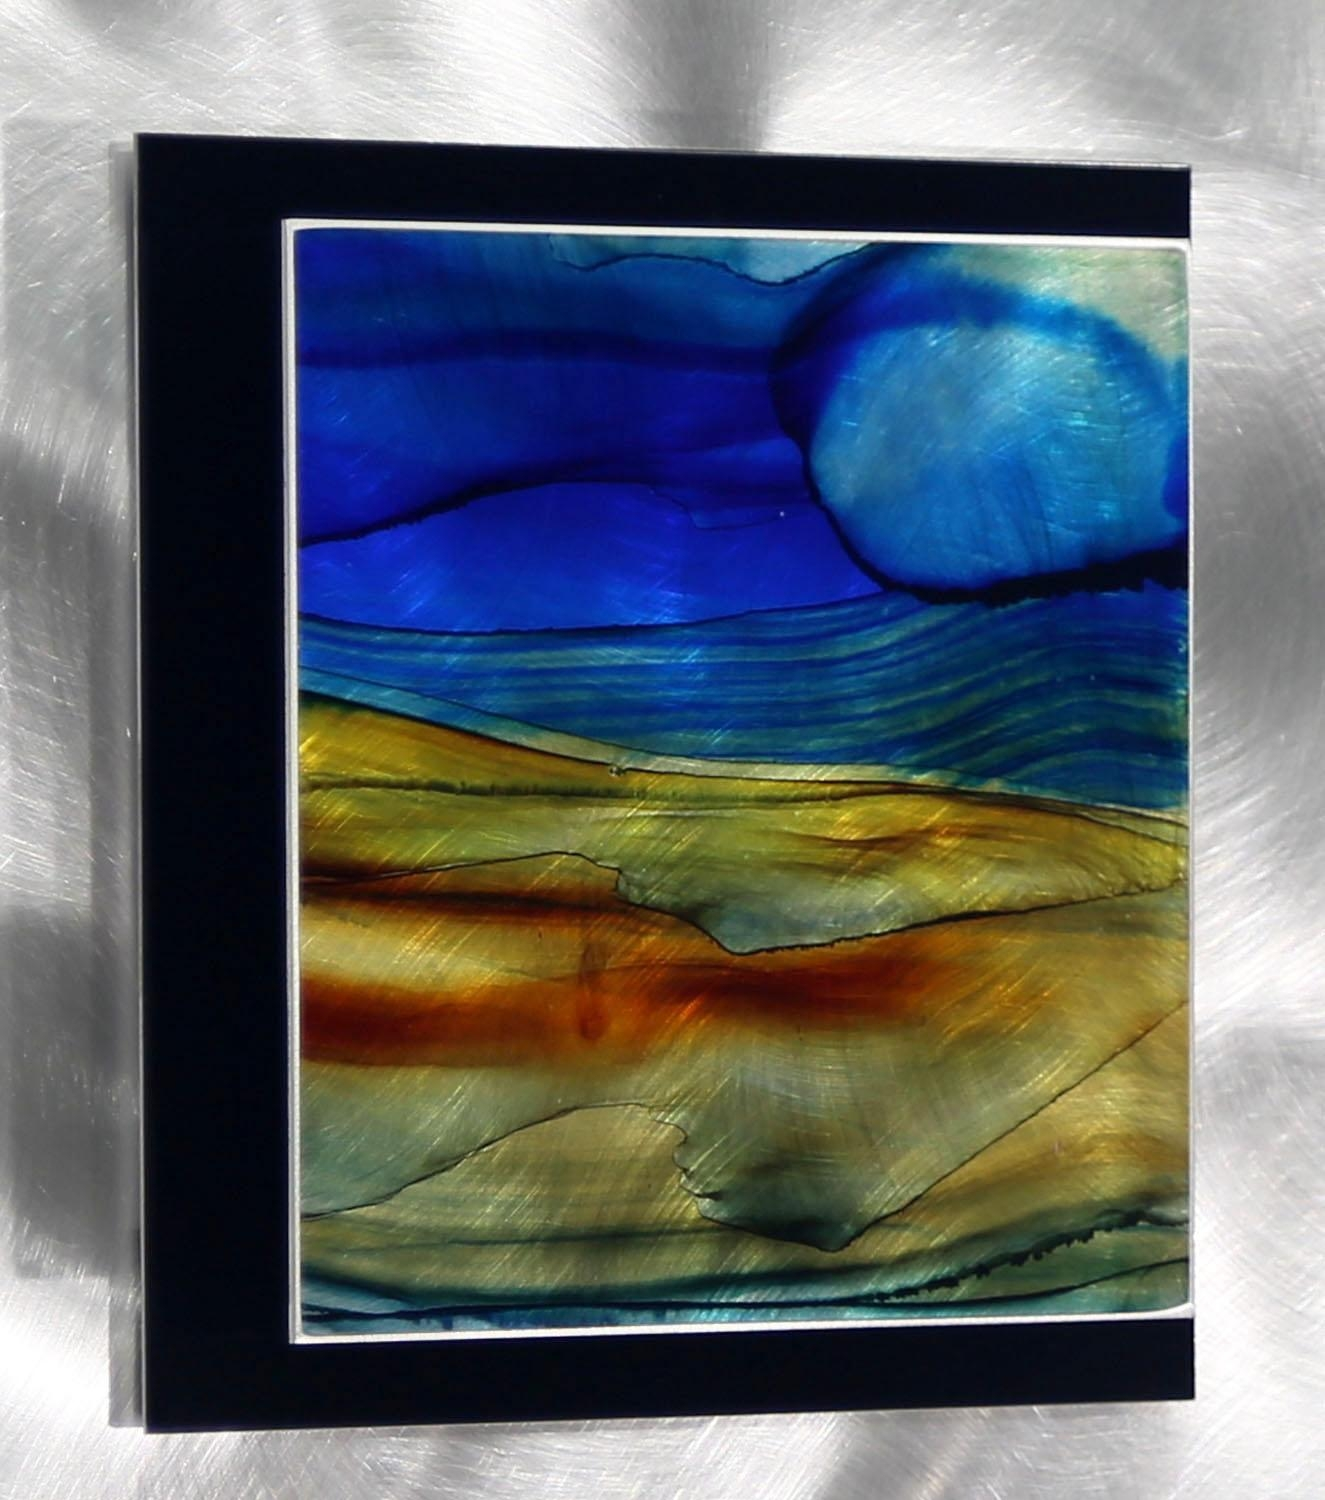 Oj 534Jon Allen – Modern One Of A Kind Blue, Green & Brown Intended For Blue And Brown Wall Art (Image 13 of 20)